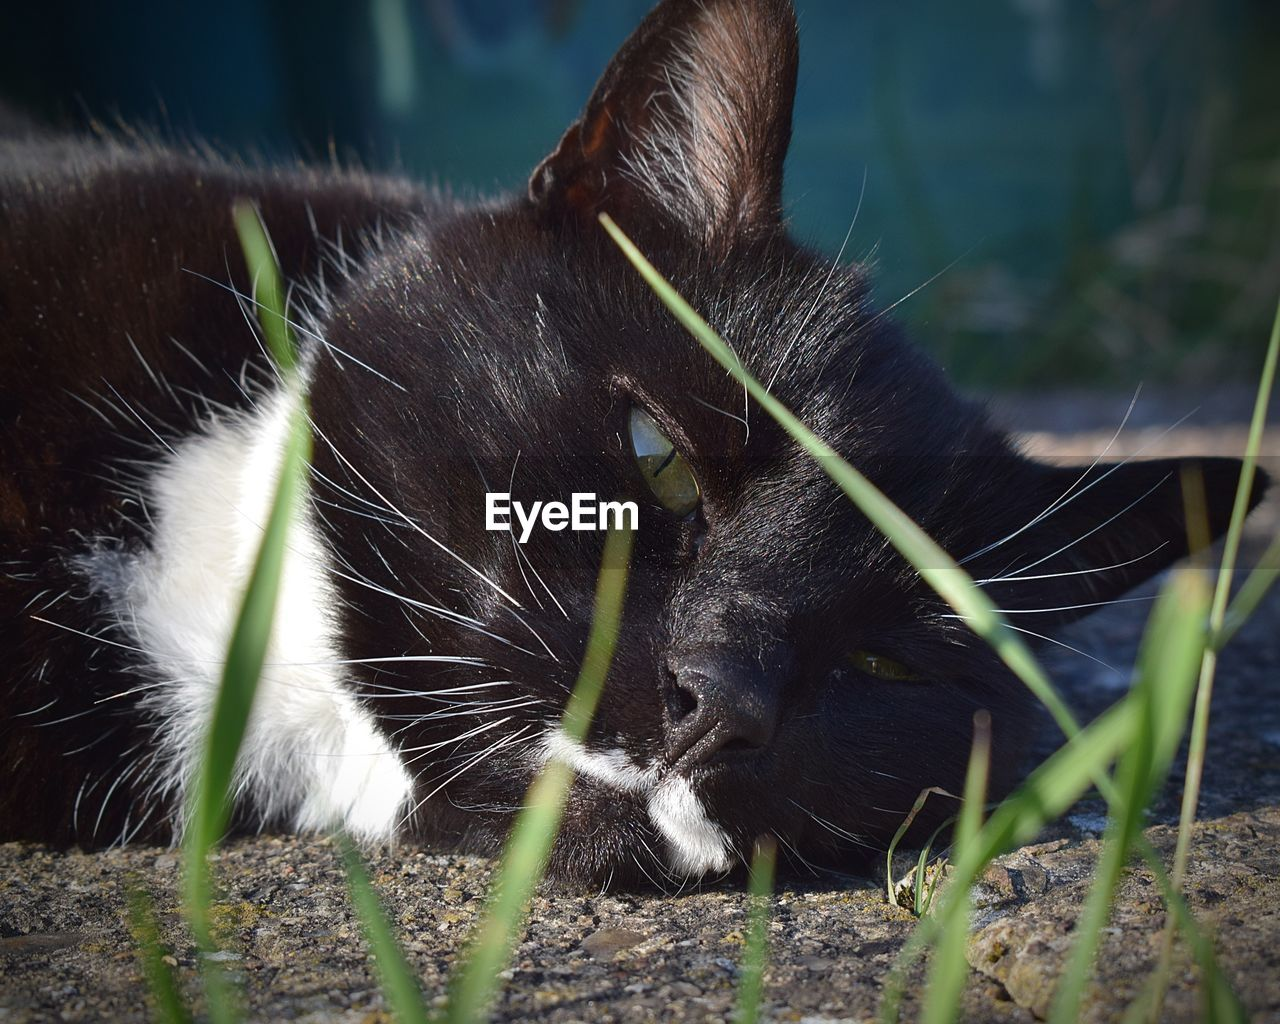 mammal, animal themes, cat, feline, one animal, animal, domestic cat, domestic animals, pets, domestic, vertebrate, no people, relaxation, close-up, nature, whisker, black color, animal body part, day, plant, animal head, animal eye